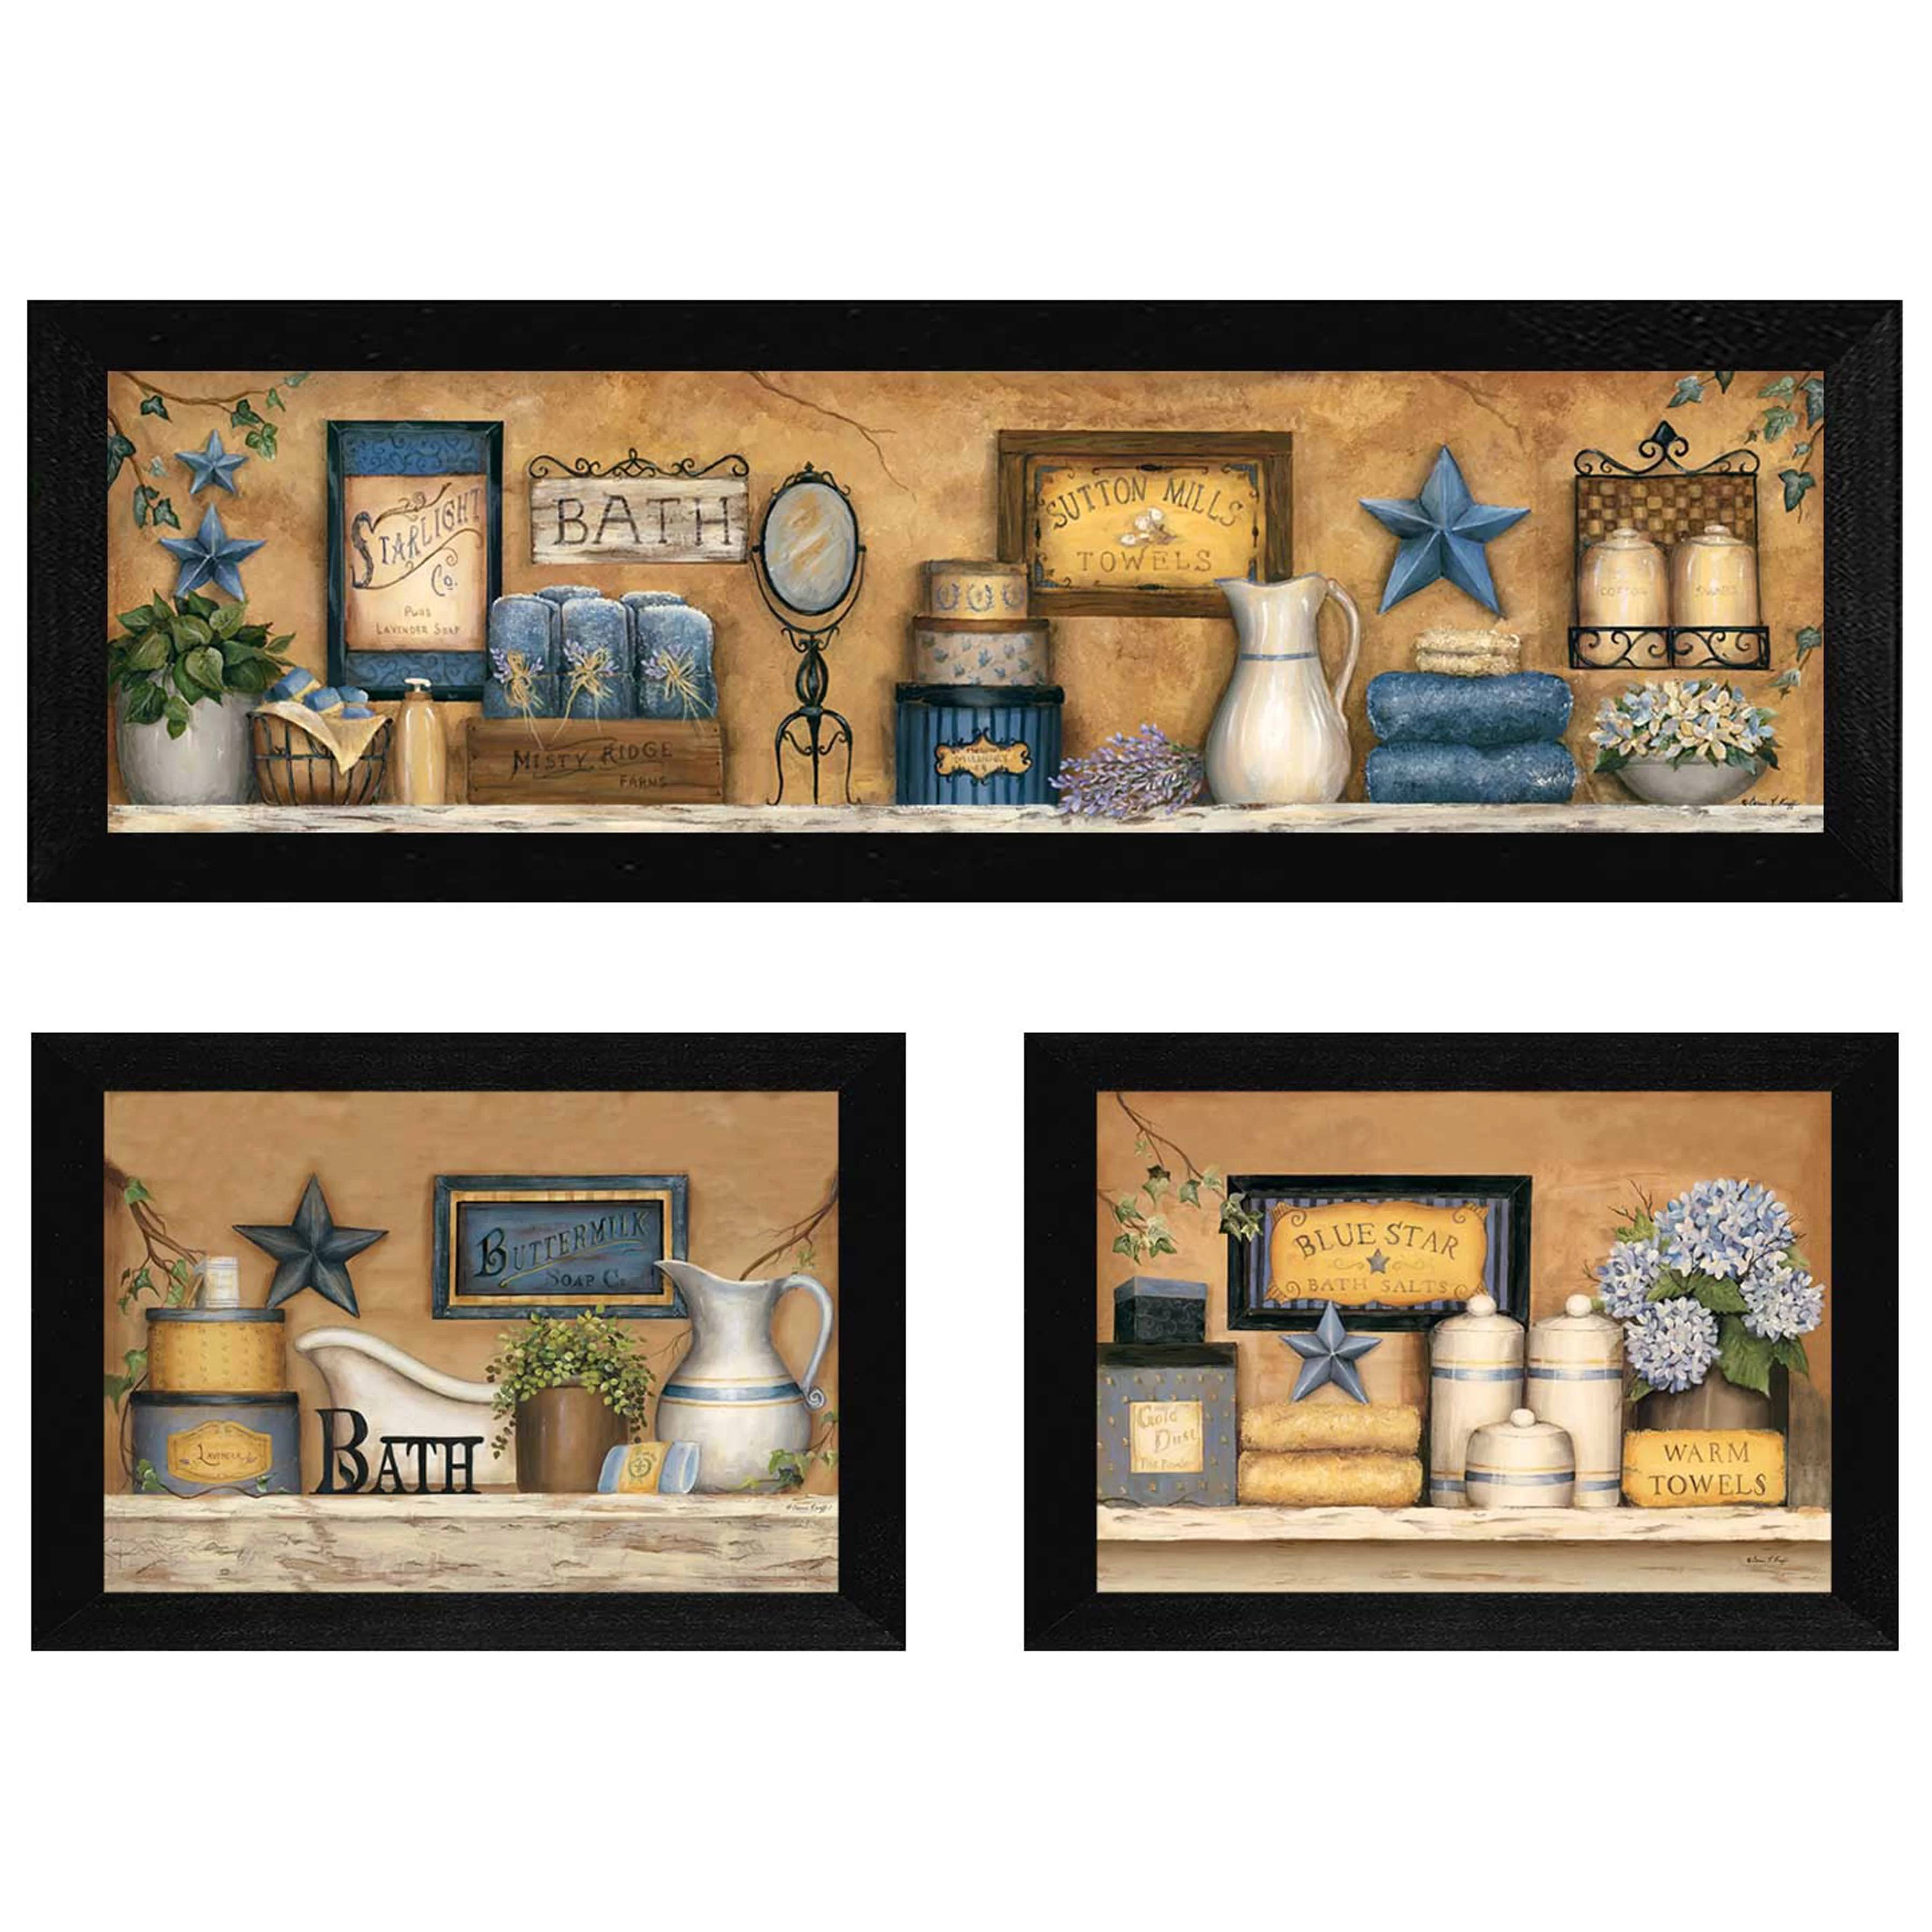 Framed Wall Art Sets Of 3 Trendy Decor 4u 39bathroom Collection Iii 39 By Carrie Knoff